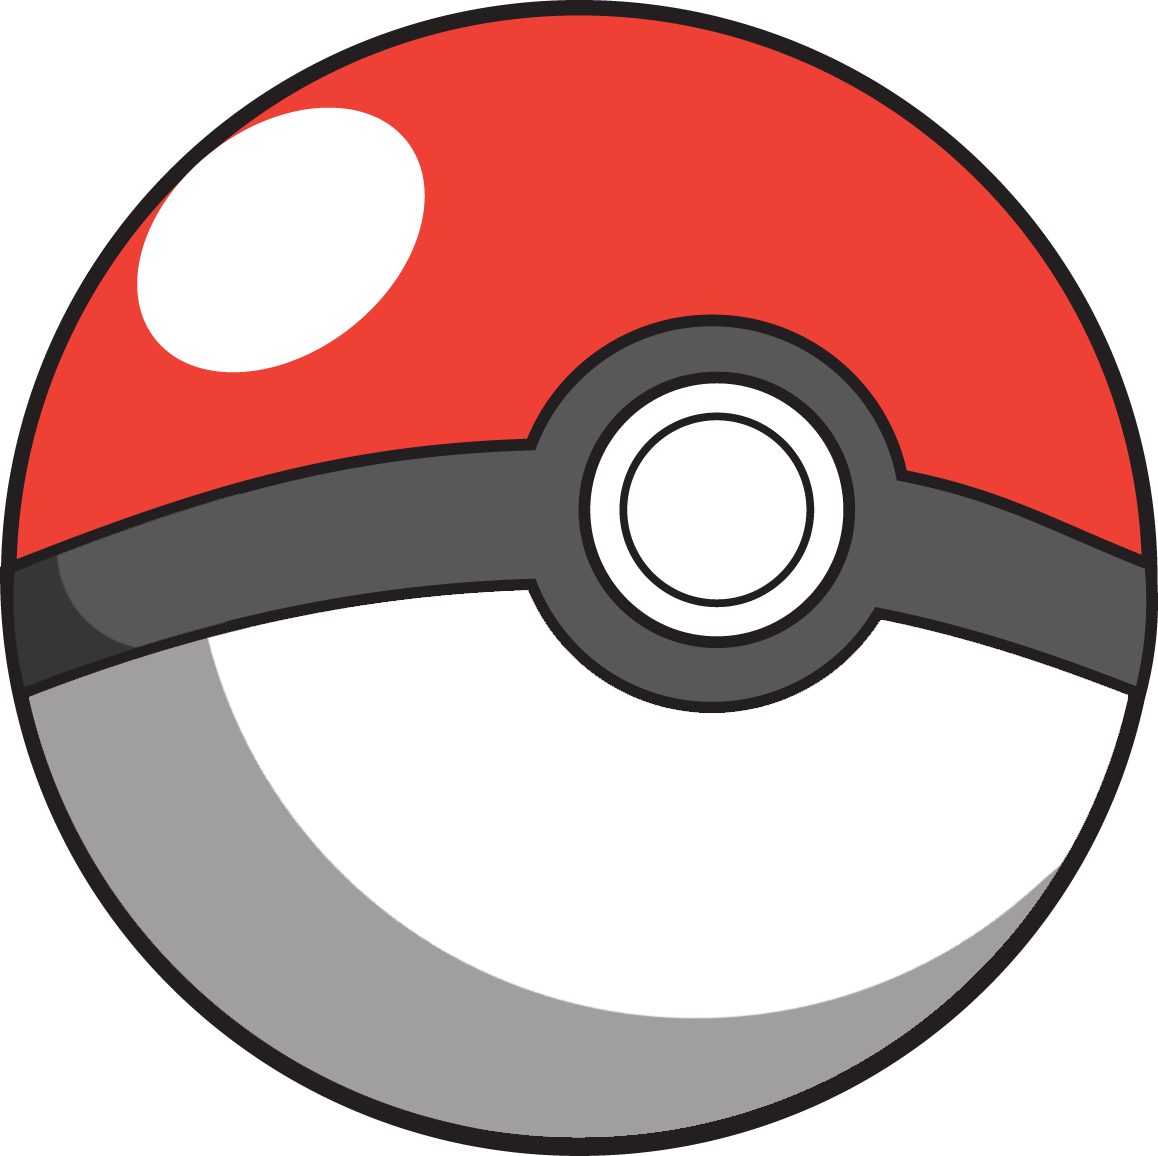 Pokeball clipart Else that they the looked